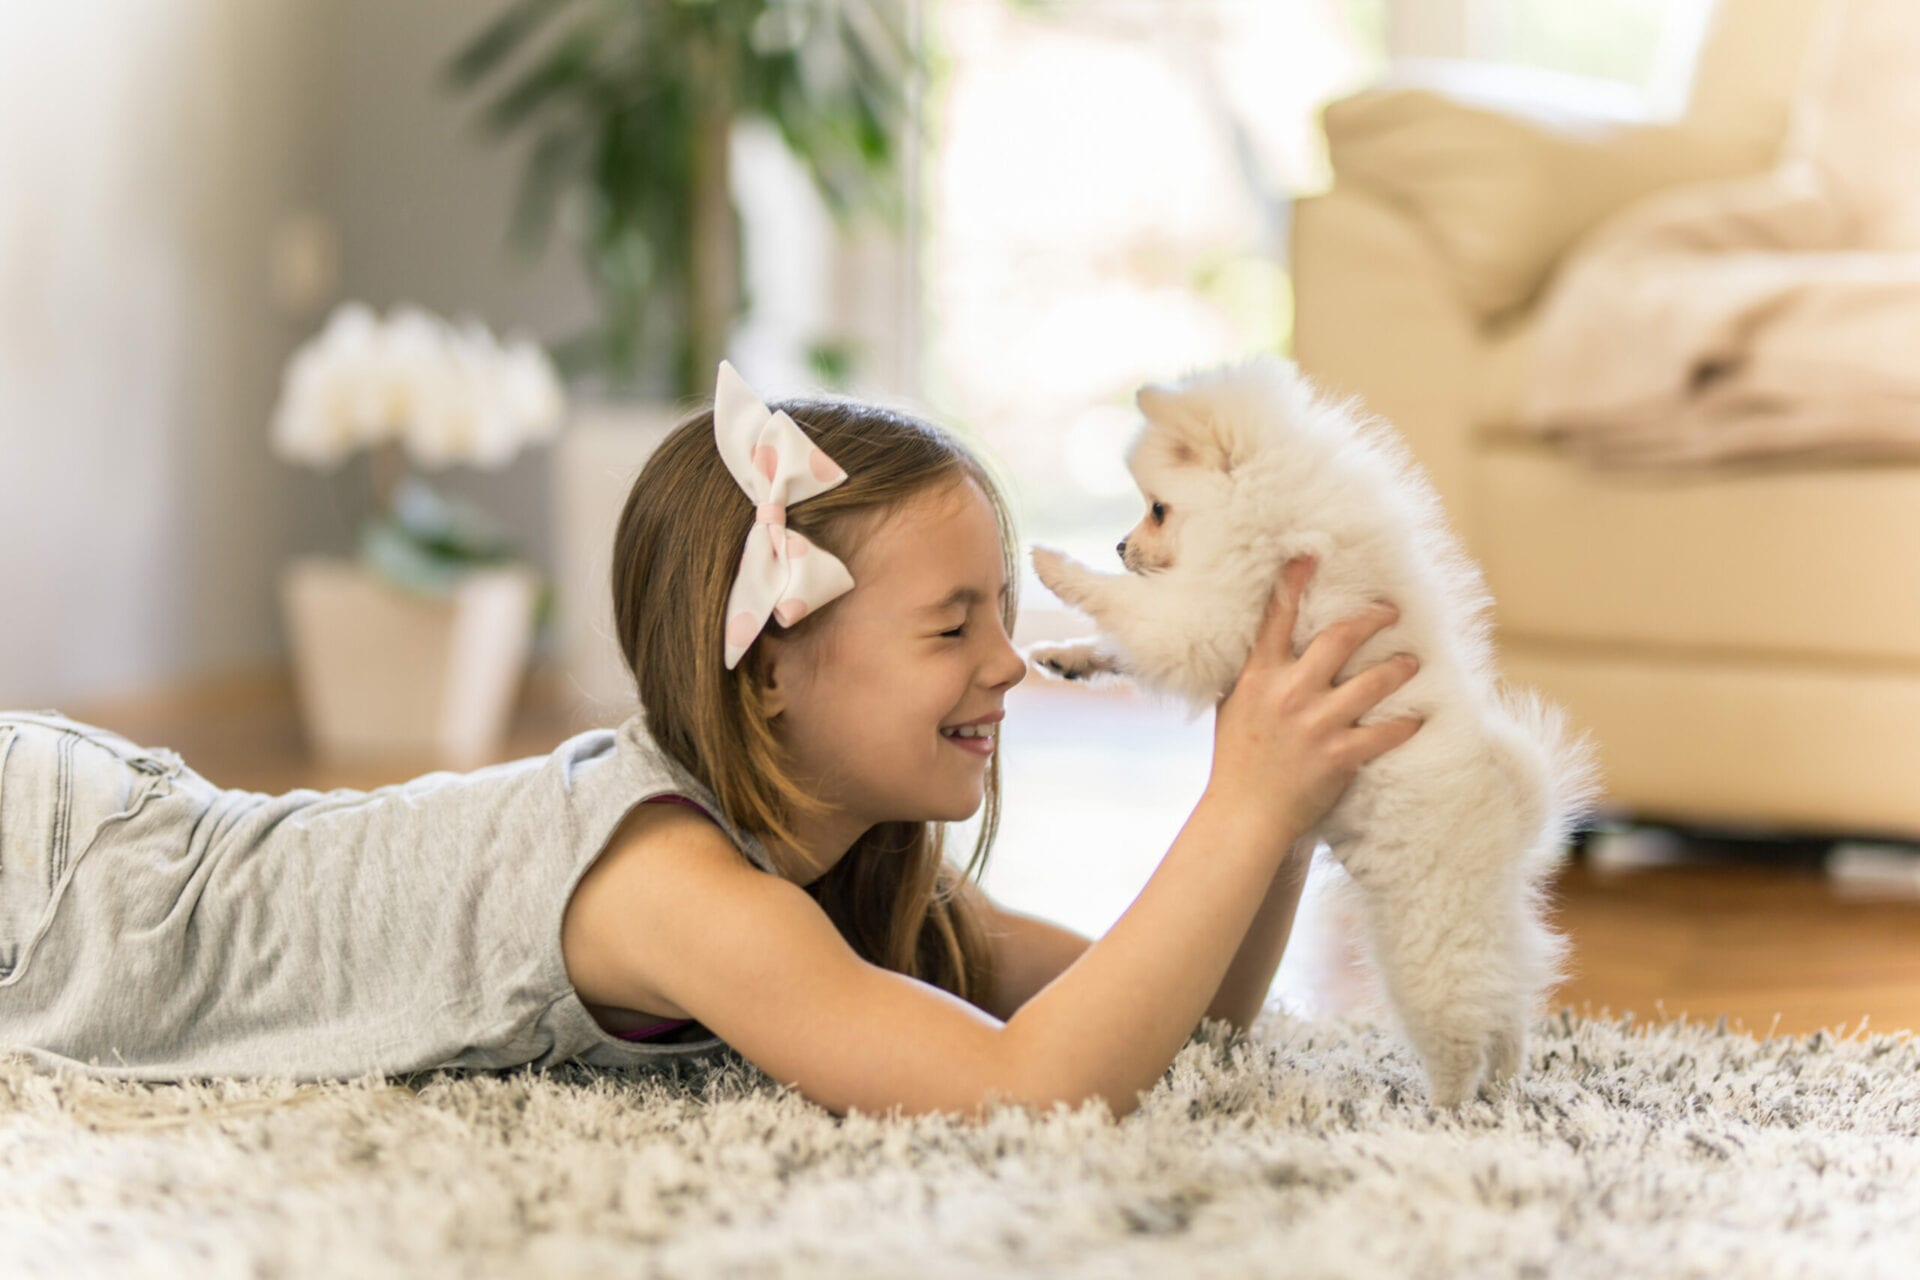 Girl playing with a Pomeranian puppy